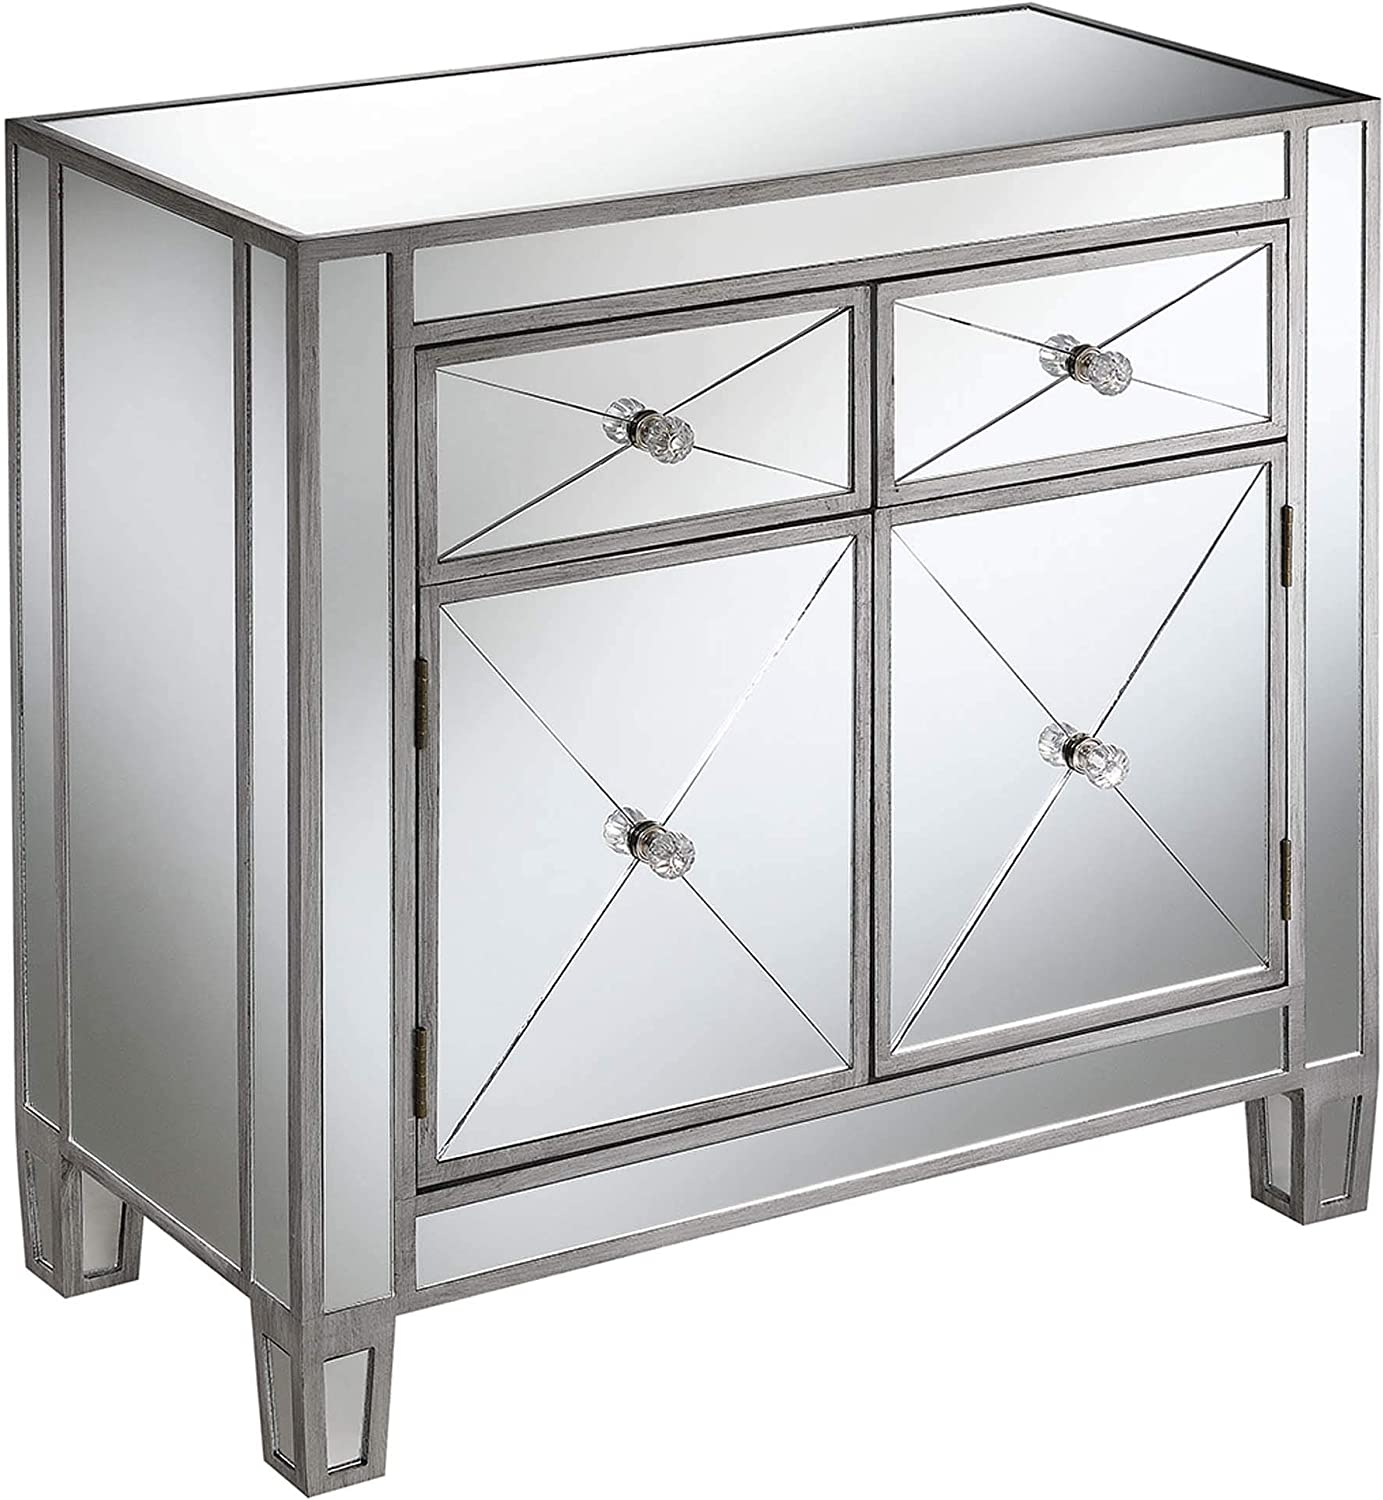 Convenience Concepts Gold Coast Vineyard 2 Drawer Mirrored Hall Table, Antique Silver